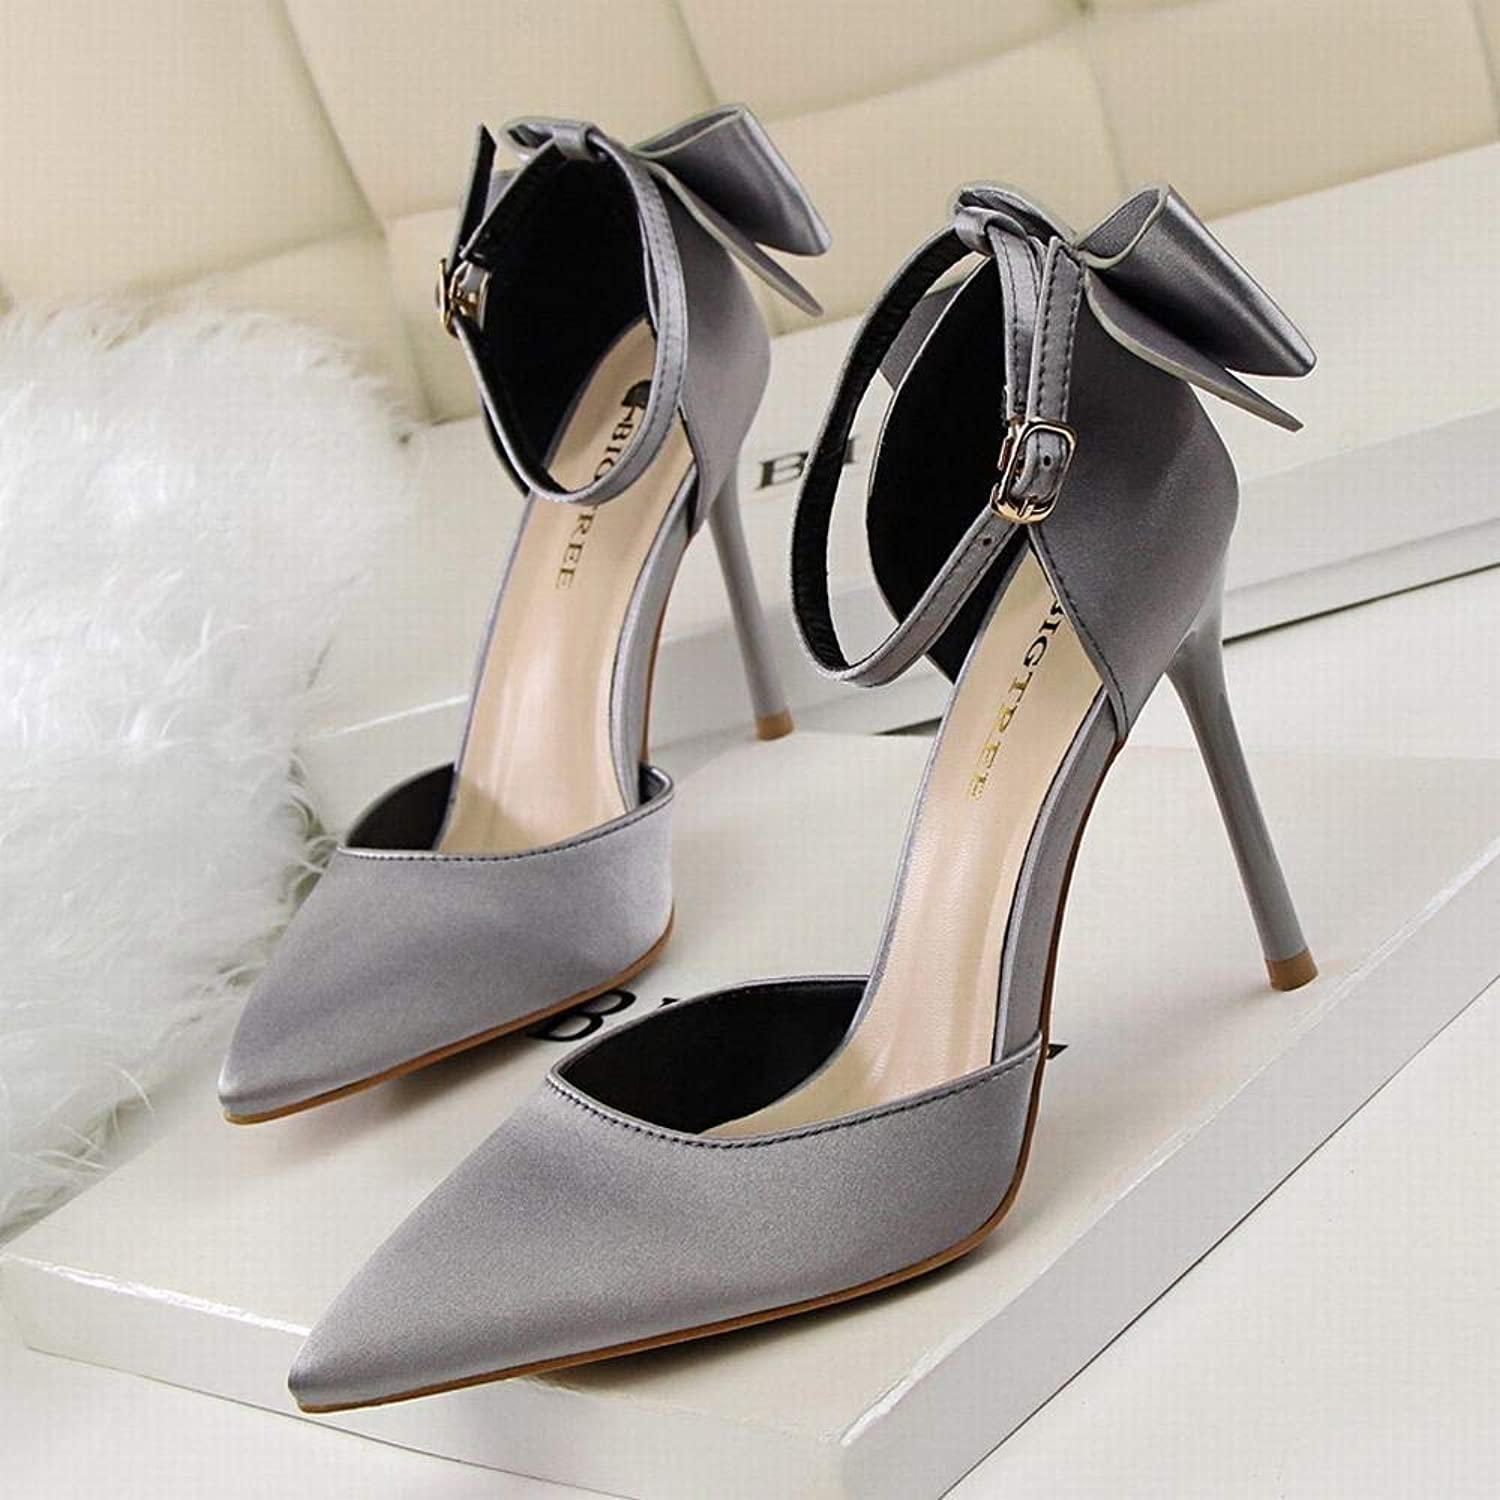 Kirabon Women's Sweet Beauty shoes Stiletto High Heel Pointed Satin Bow High Heel Sandals Wedding shoes (color   Silver Grey, Size   36)